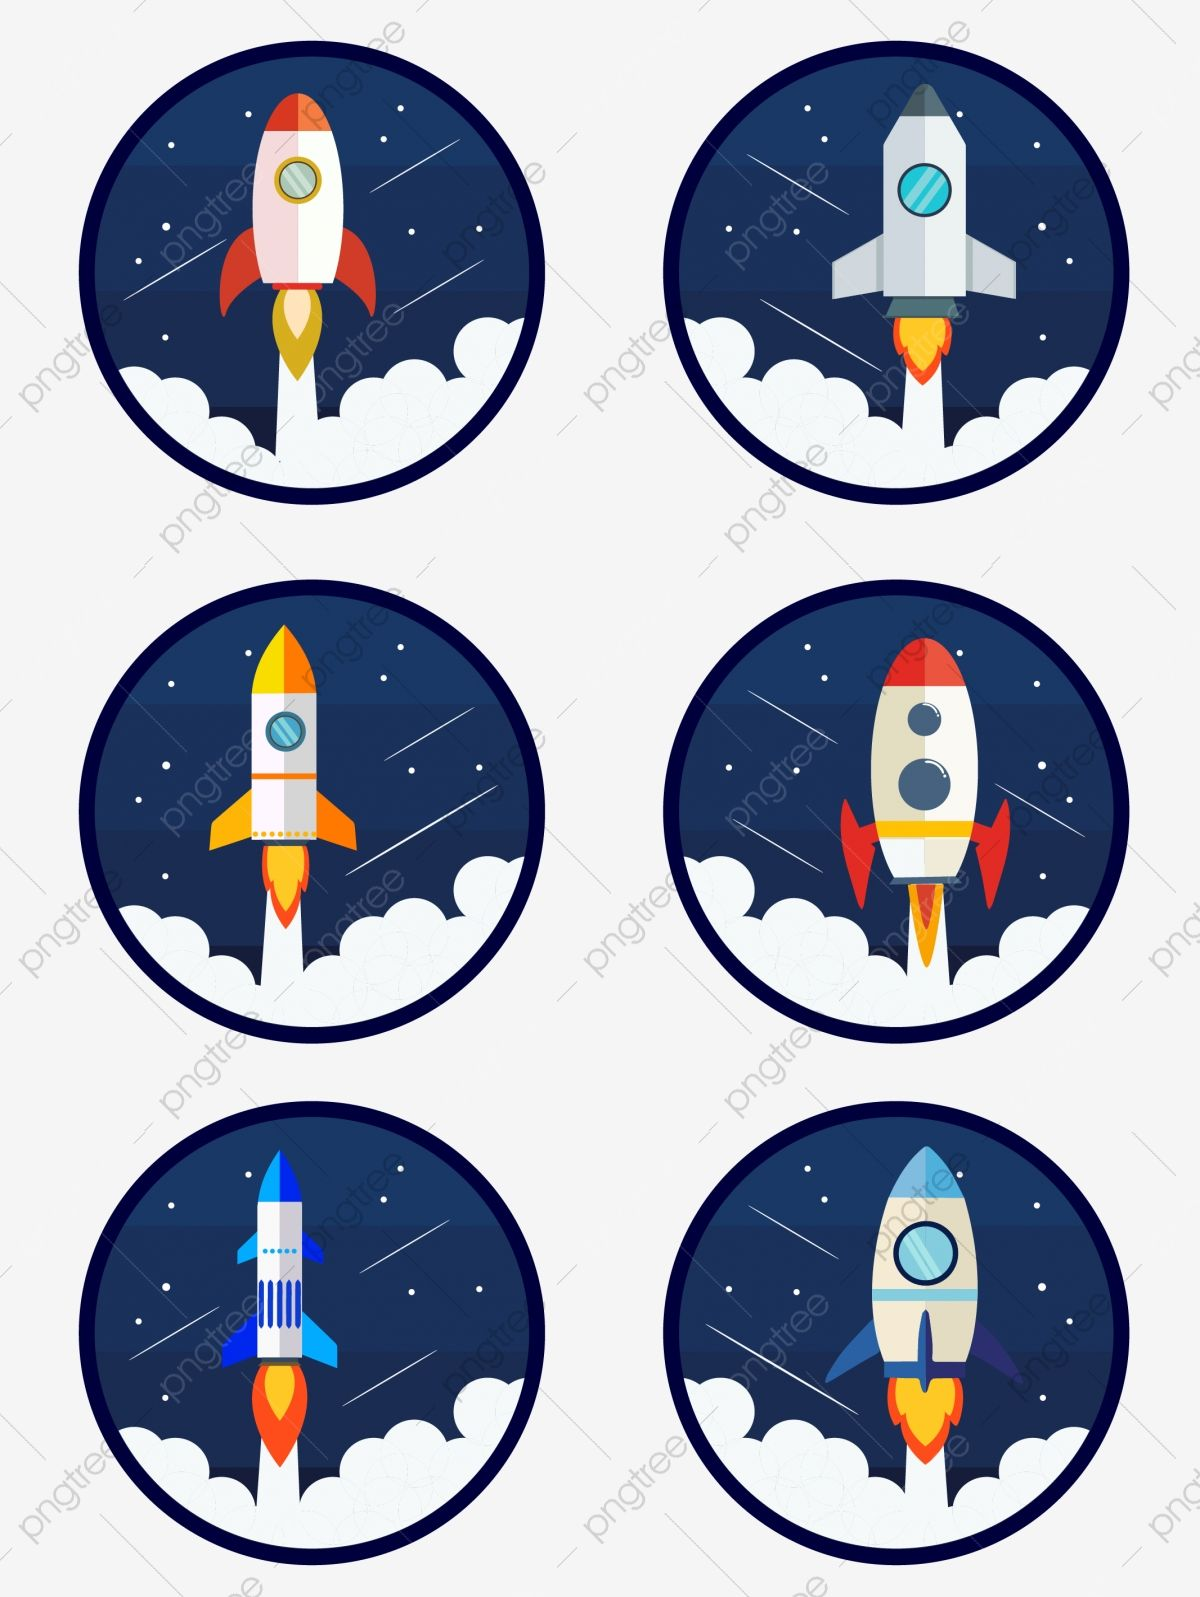 Simple Fashion Spaceship Rocket Aviation Equipment Cartoon Icon Element Spaceship Rocket Cartoon Png And Vector With Transparent Background For Free Download Cartoon Icons Rocket Cartoon Simple Cartoon